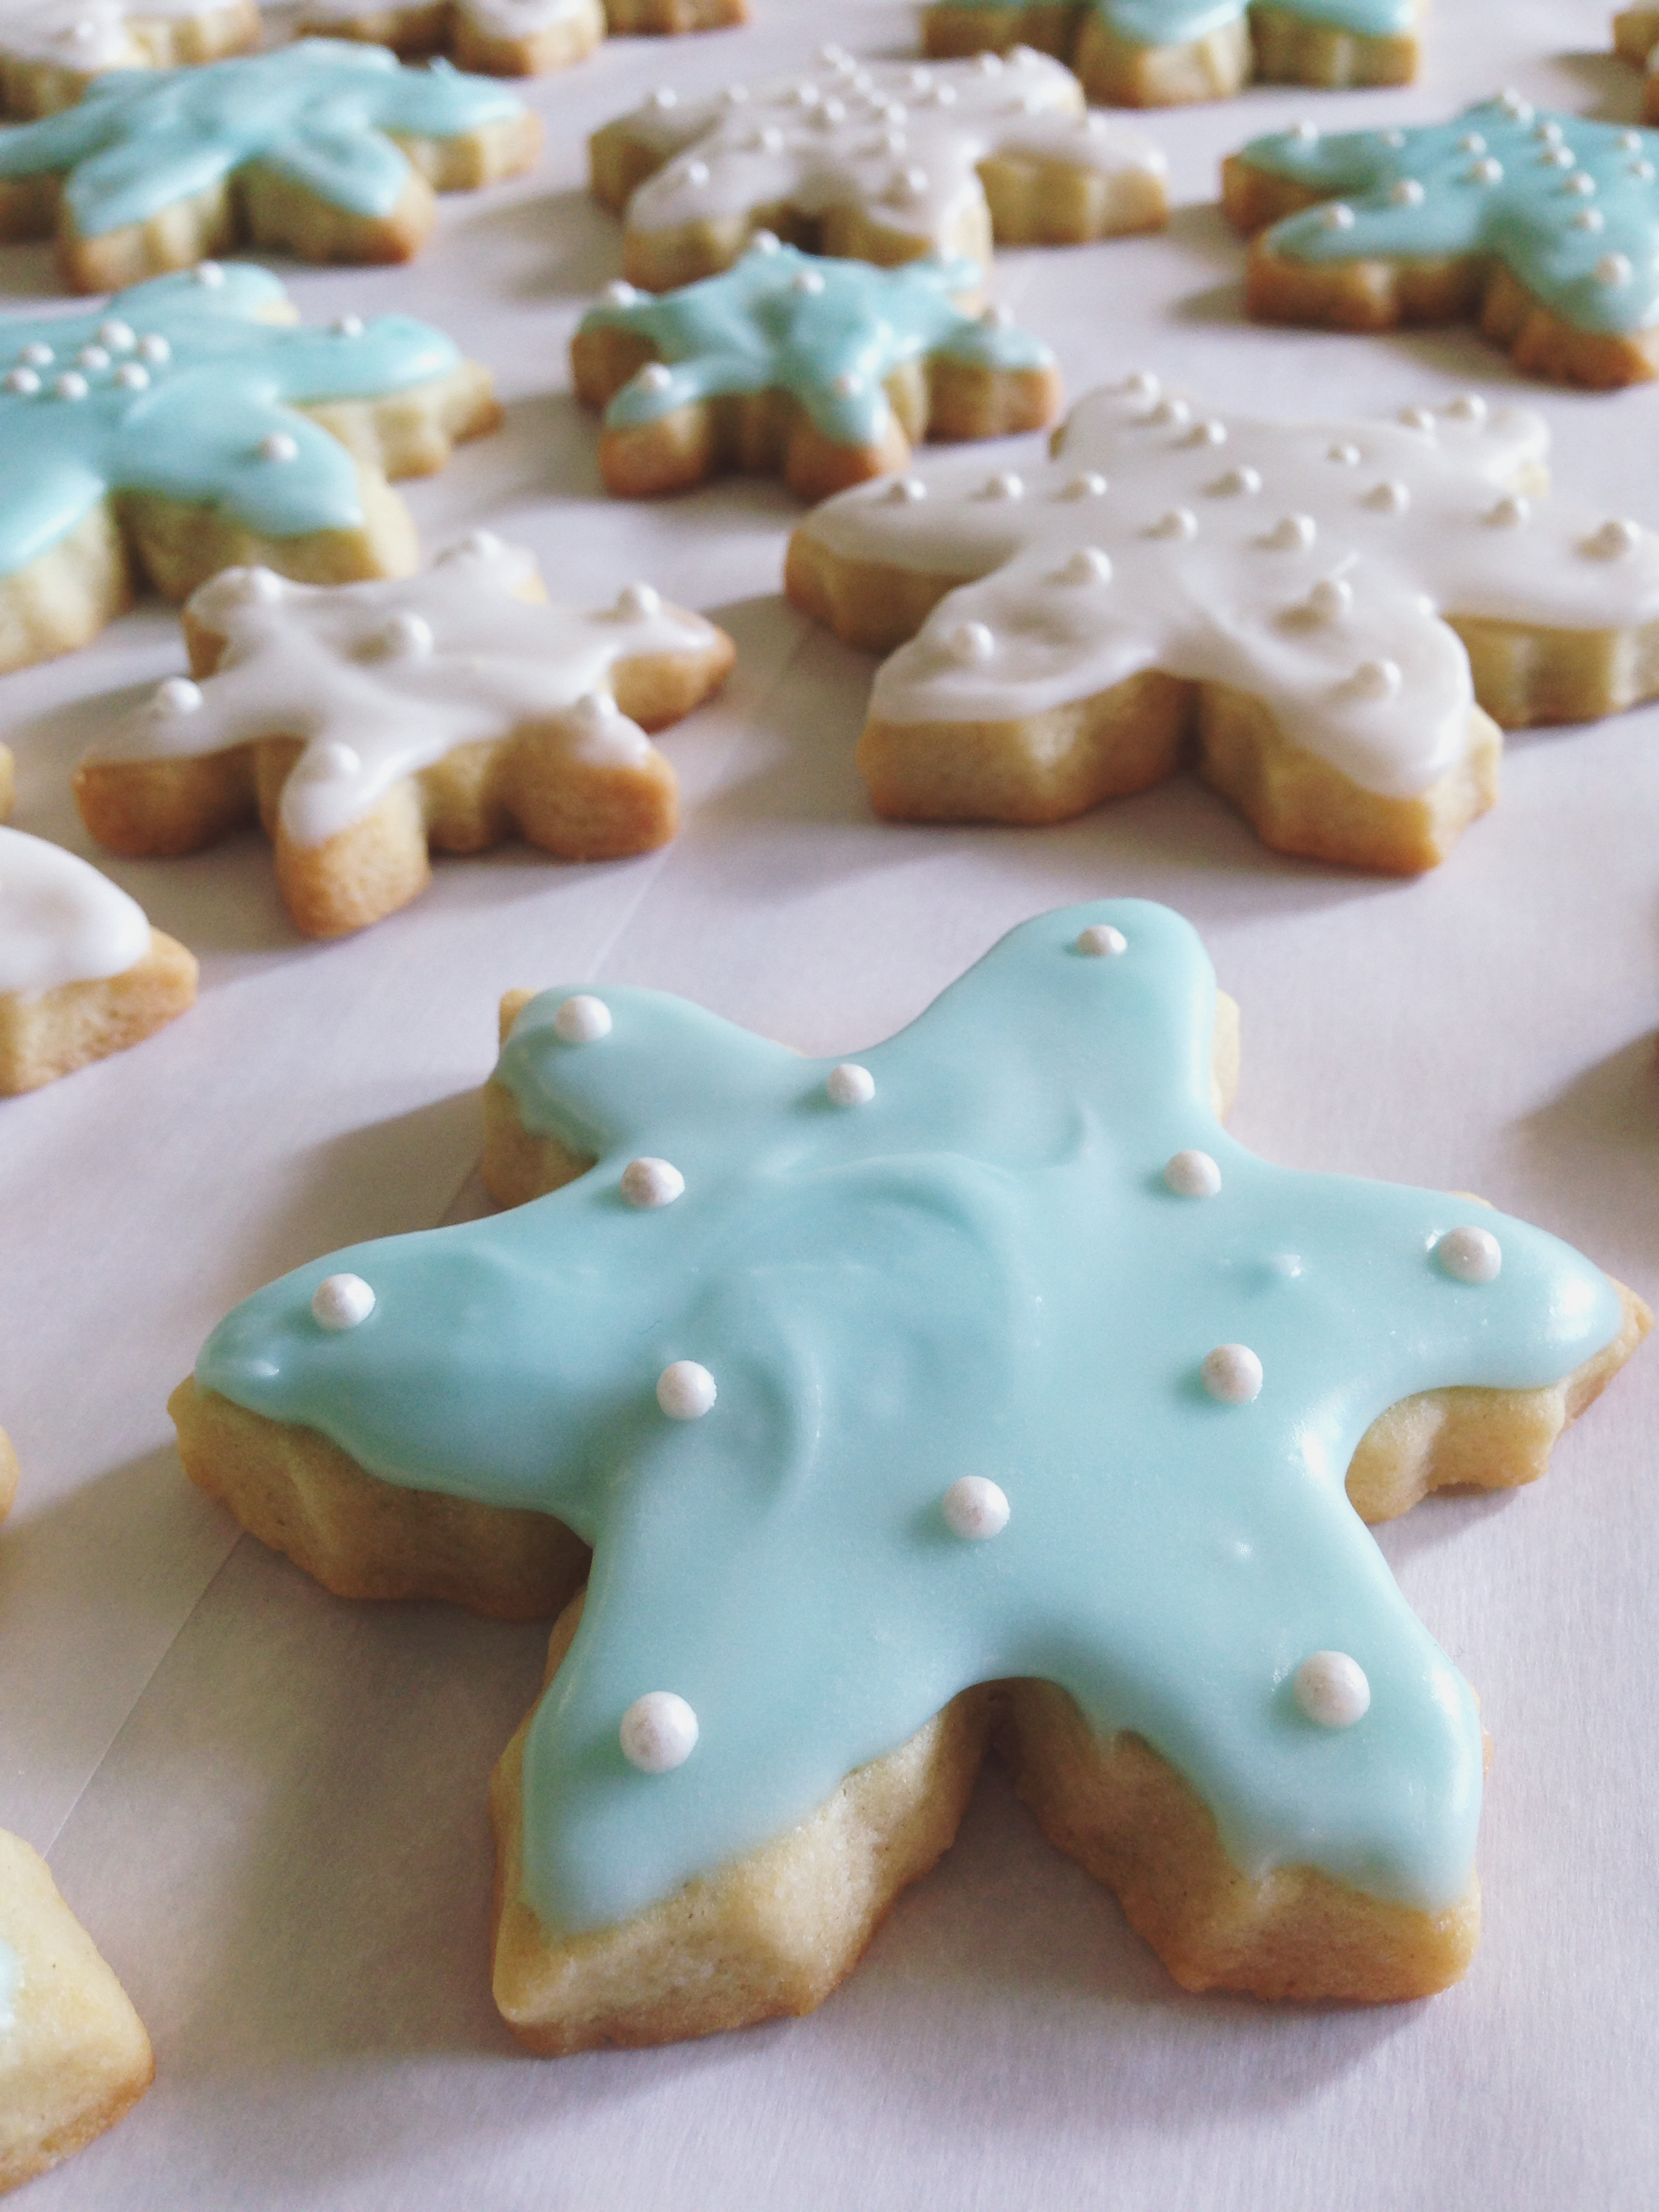 Old fashioned frosted sugar cookies